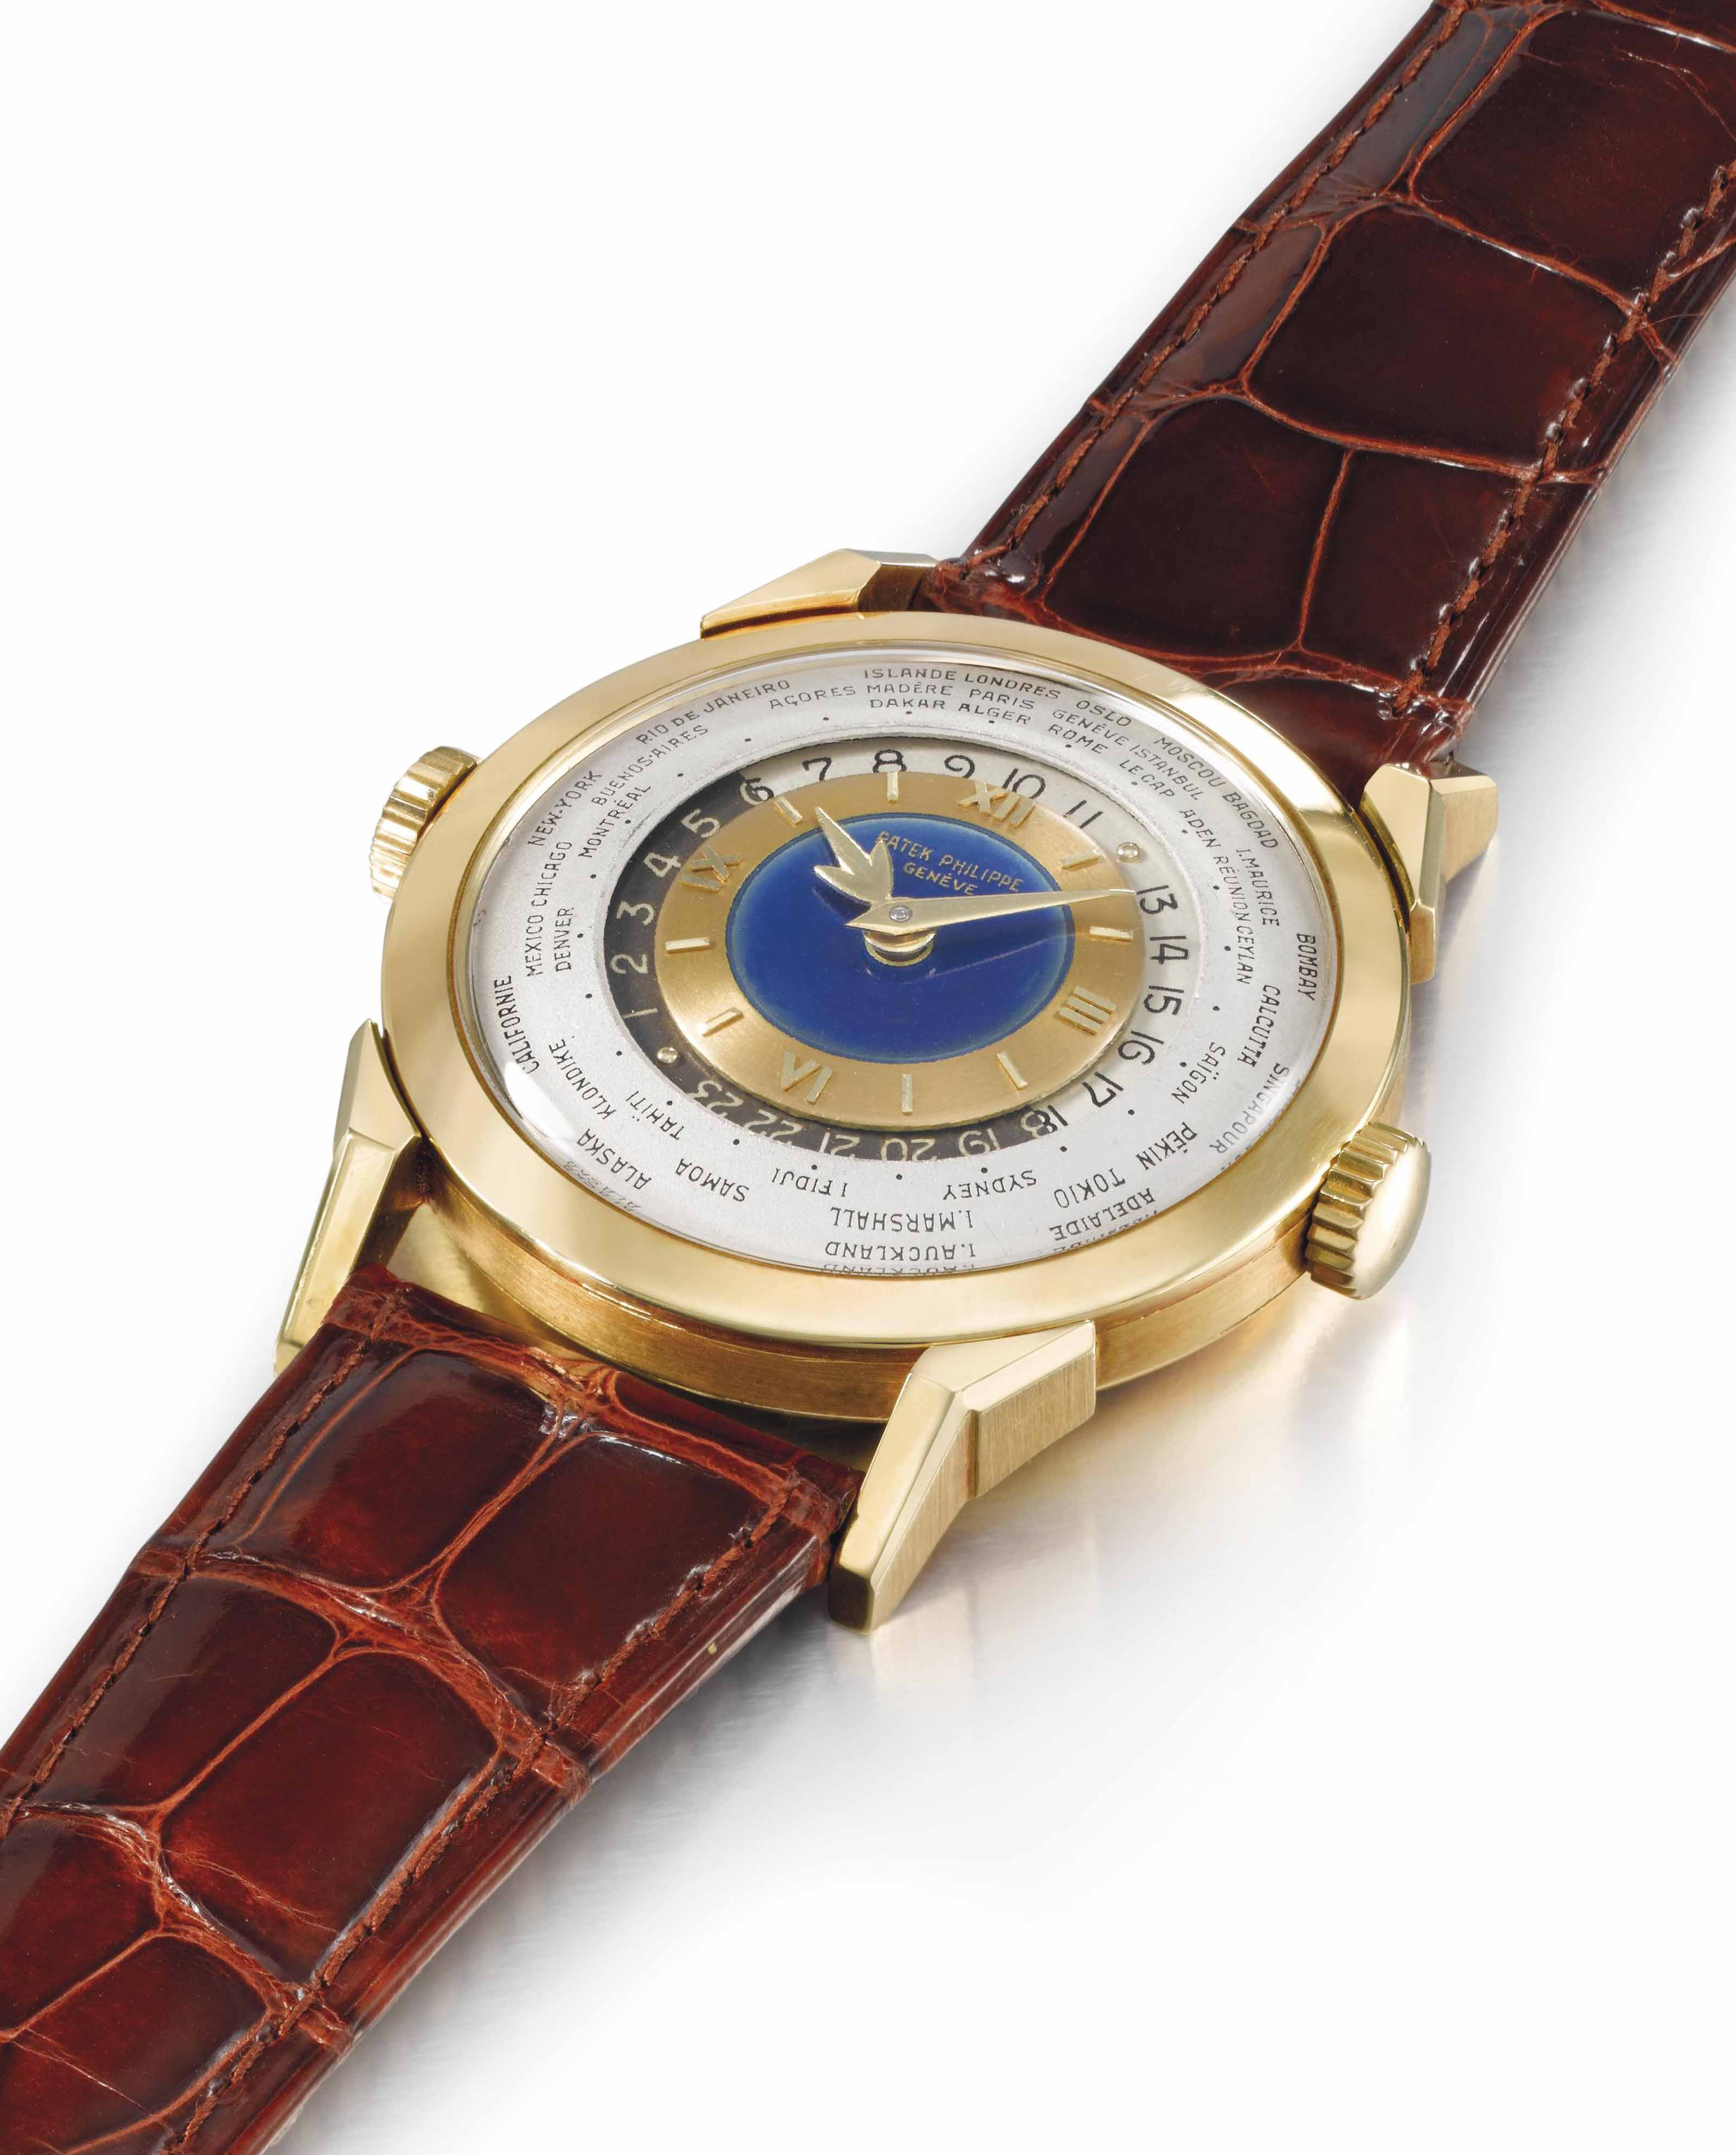 Patek Philippe. An exceptionally rare and highly important 18K gold two crown world time wristwatch with 24 hours indication and blue enamel dial